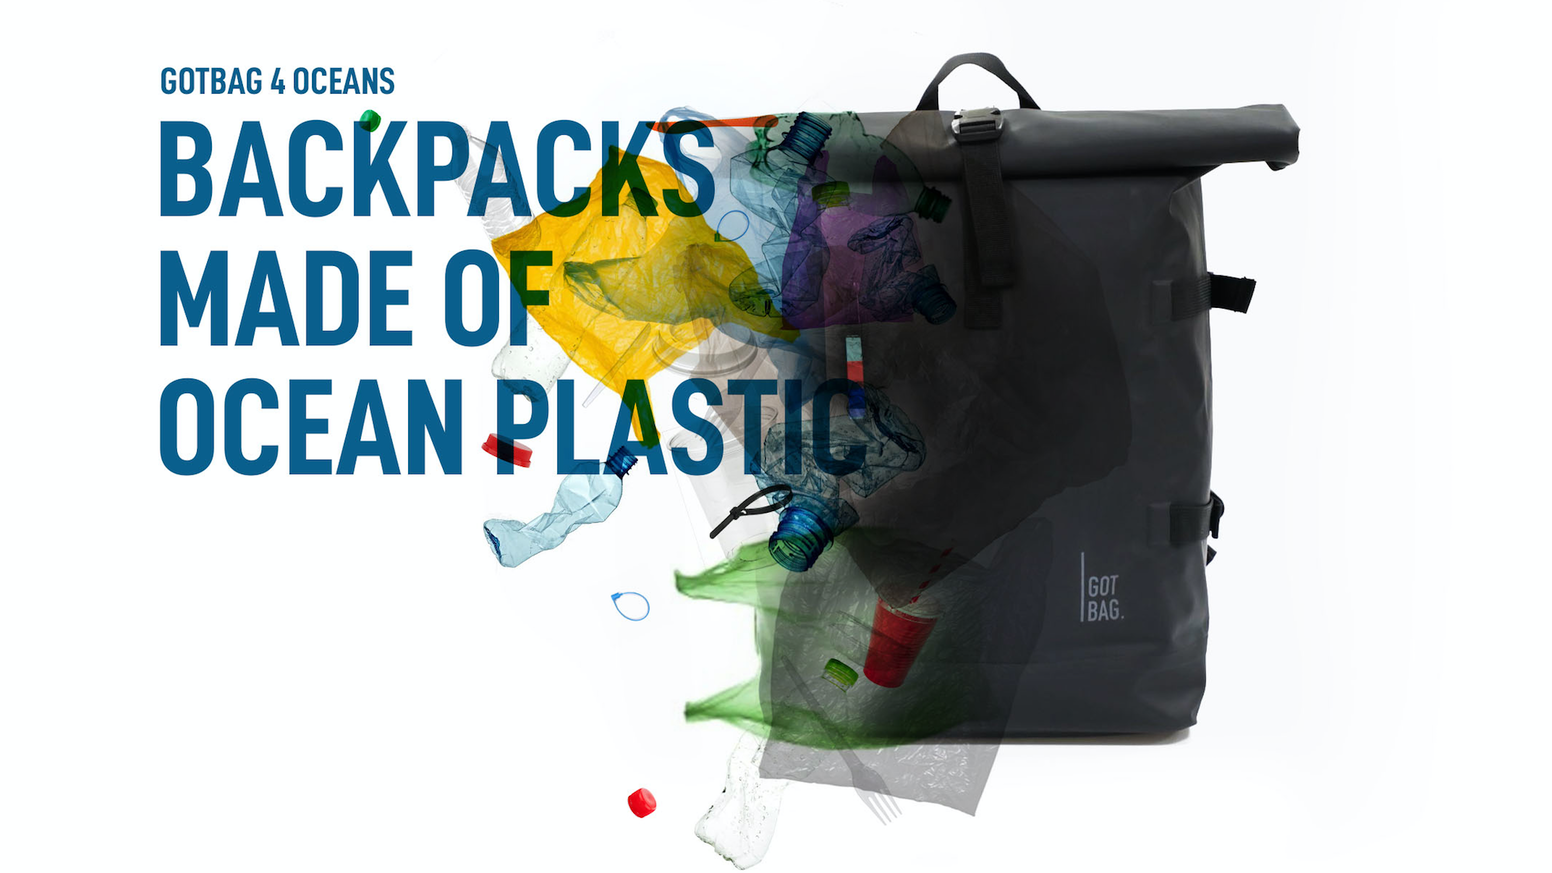 After 1 1/2 years of planning, researching and developing we are happy and proud to announce our backpack made of ocean plastic! Find Out More under www.got-bag.com